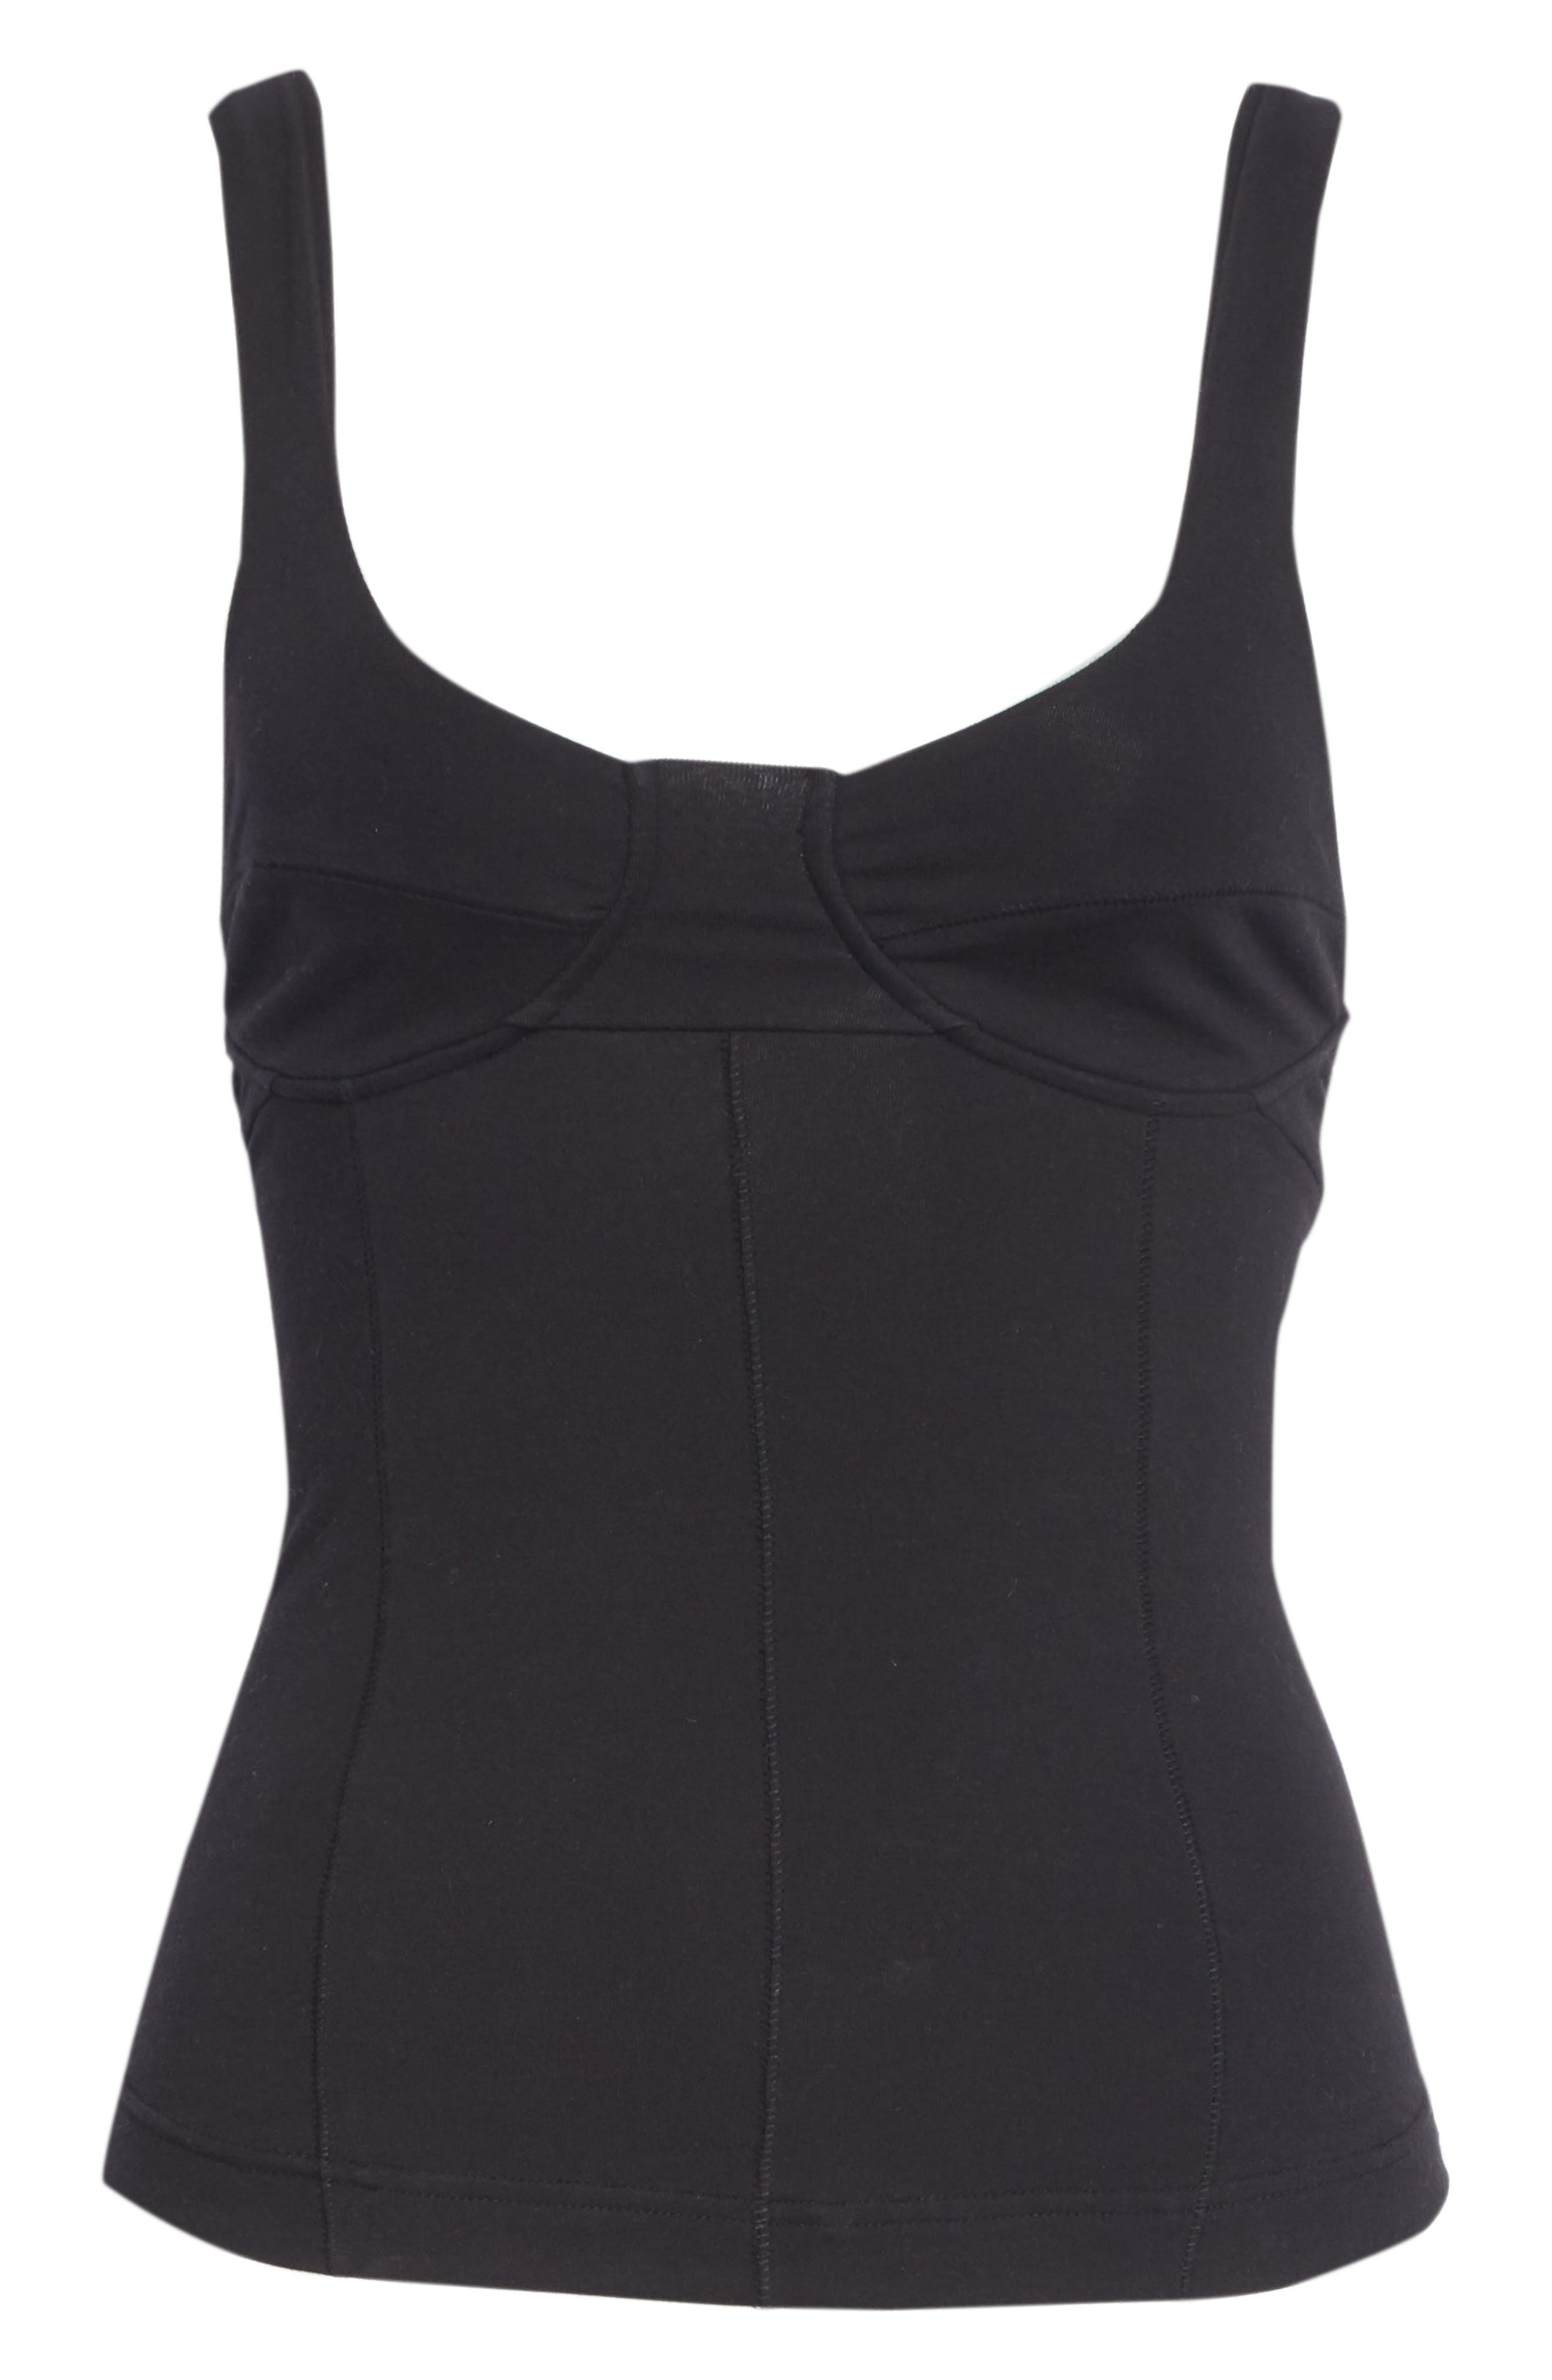 Framework Camisole,                             Alternate thumbnail 6, color,                             001